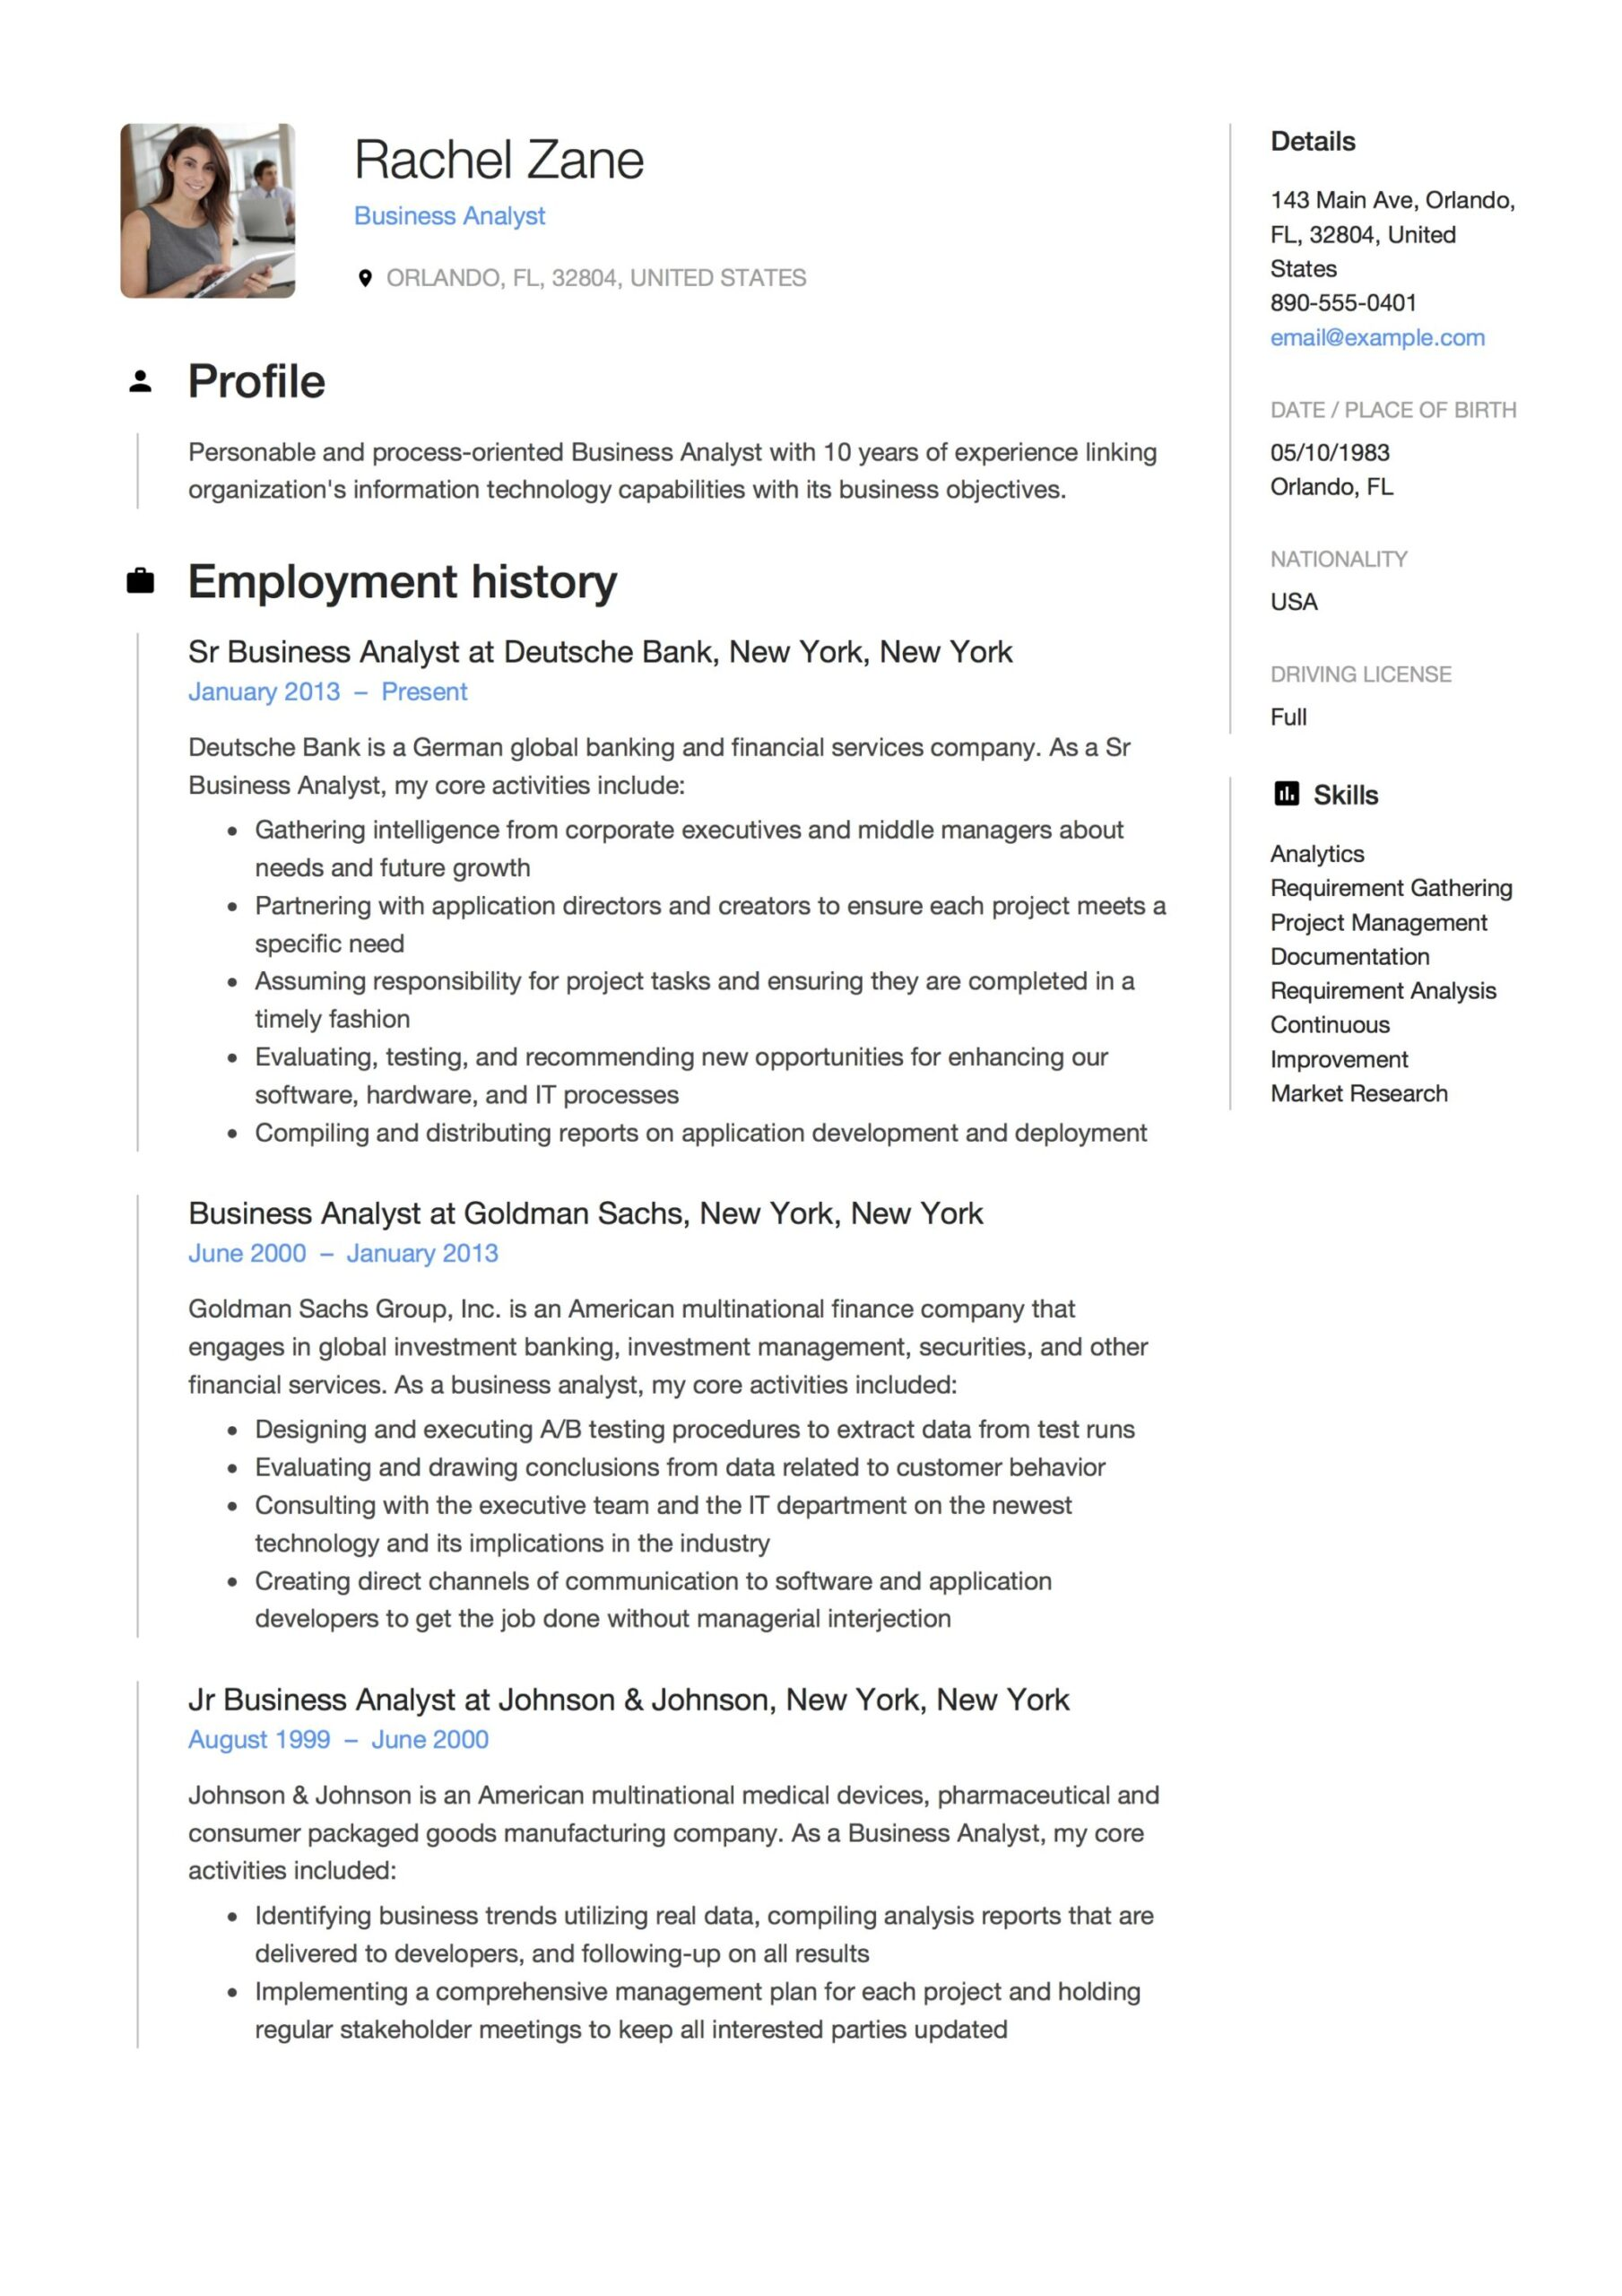 business analyst resume guide templates pdf free downloads builder general labor skills Resume Business Analyst Resume Builder